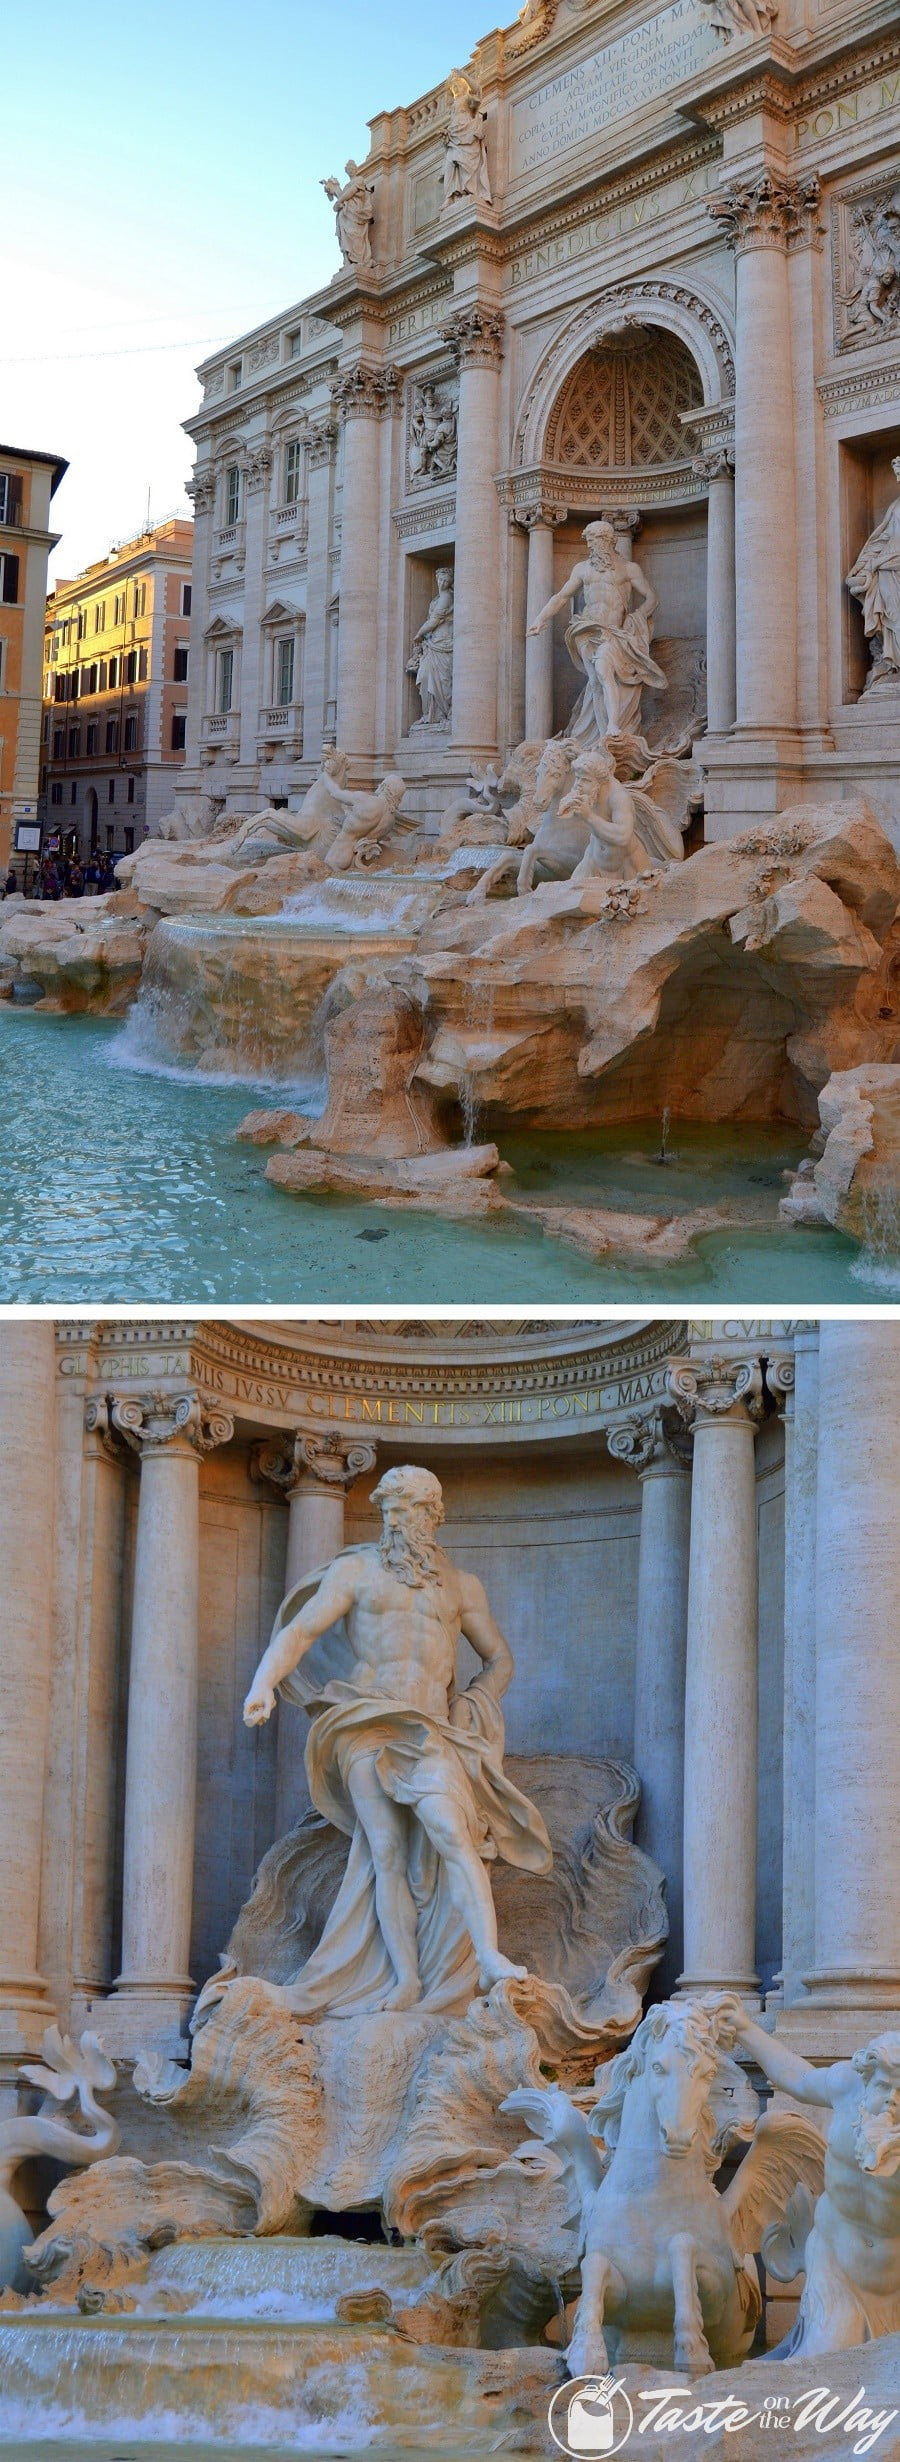 Visiting the Trevi Fountain is one of the top #thingstodo in #Rome, #Italy. Check out for more! #travel #photography